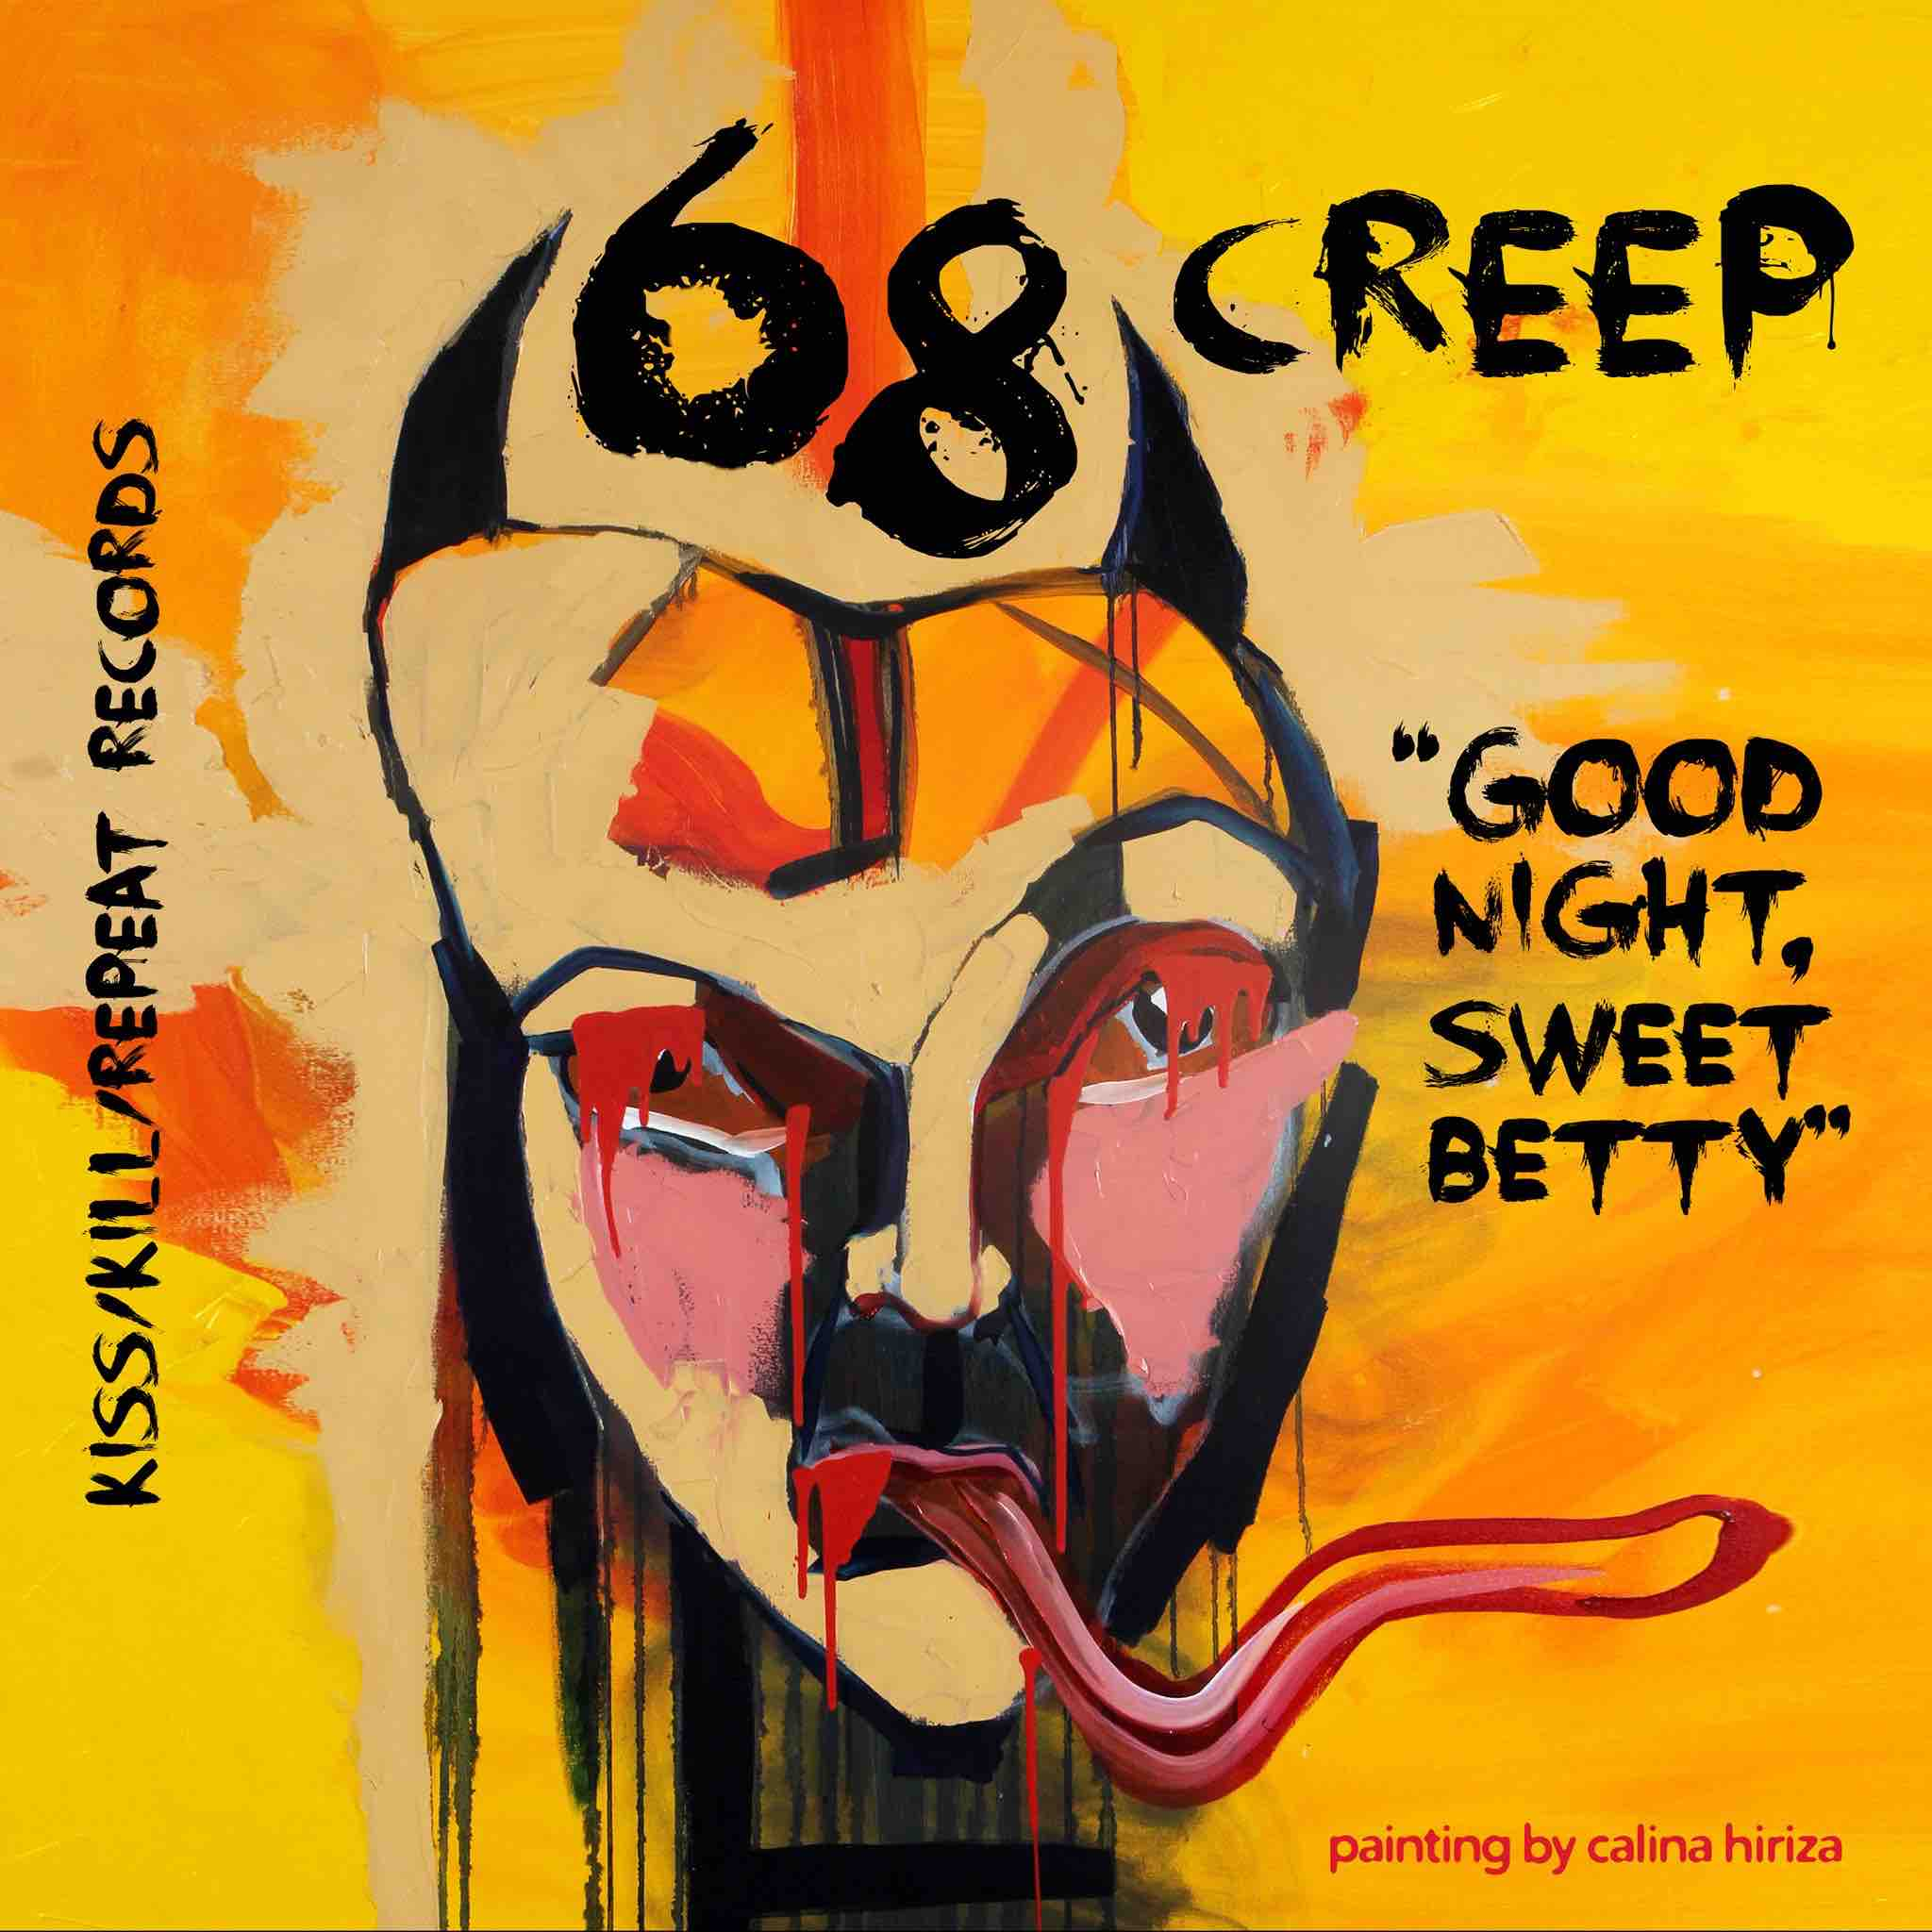 68creep goodnight sweet betty cover